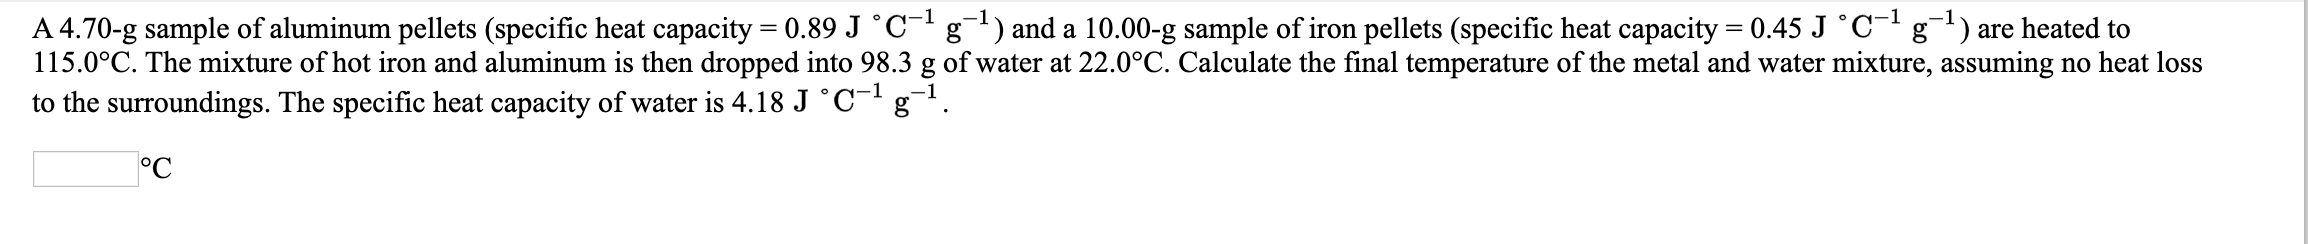 A 4.70-g sample of aluminum pellets (specific heat capacity = 0.89 J °C- g) and a 10.00-g sample of iron pellets (specific heat capacity = 0.45 J °C- g) are heated to 115.0°C. The mixture of hot iron and aluminum is then dropped into 98.3 g of water at 22.0°C. Calculate the final temperature of the metal and water mixture, assuming no heat loss to the surroundings. The specific heat capacity of water is 4.18 J °C¯'g¬! °C